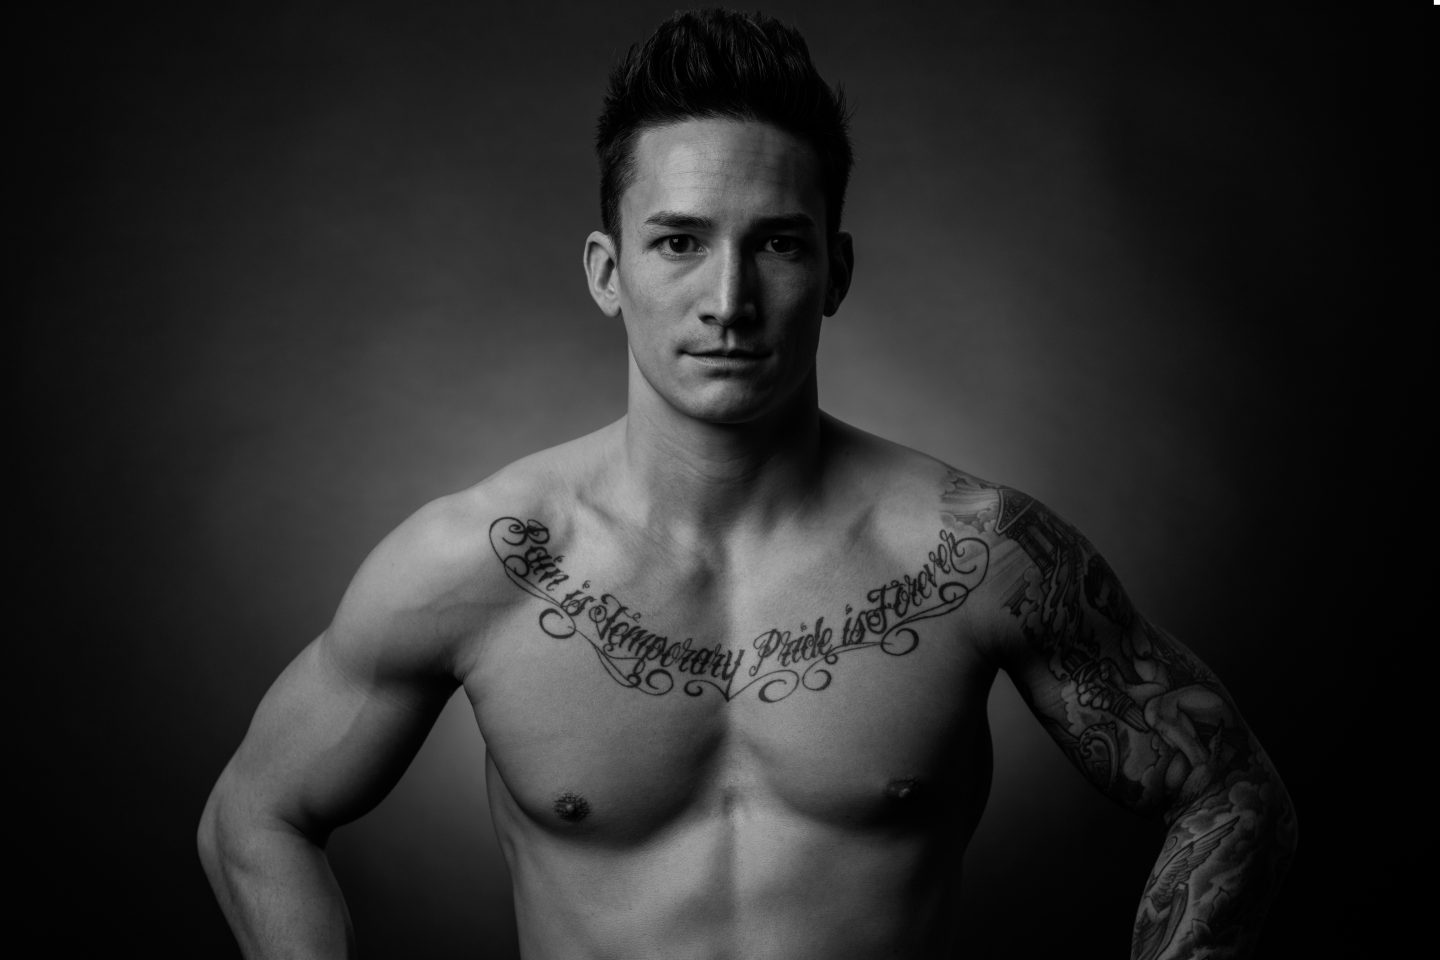 Gymnast Marcel Nguyen is facing the camera. The tattoo on his bare chest reads